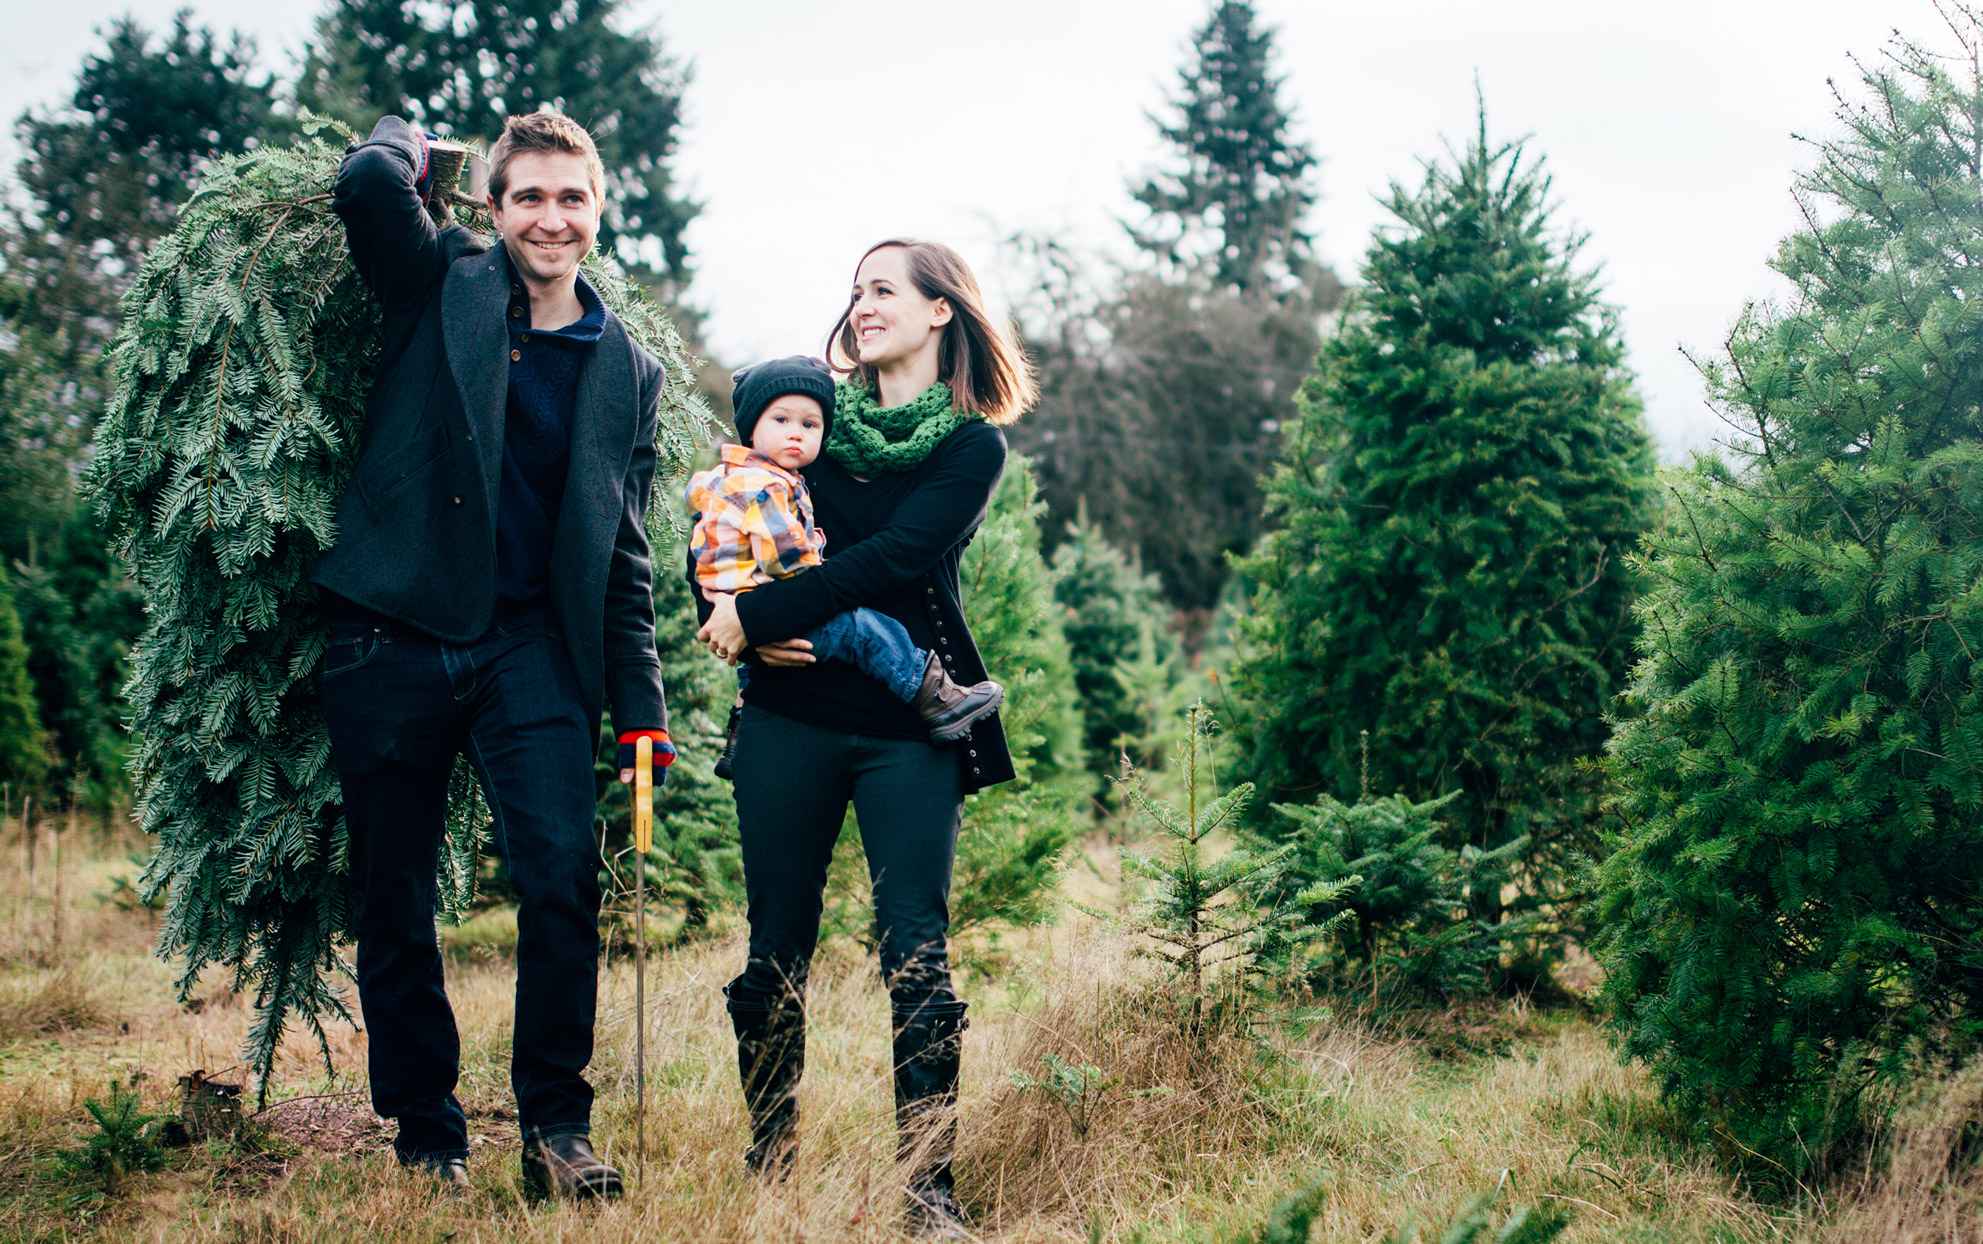 Family at a Christmas tree farm with a cut down tree